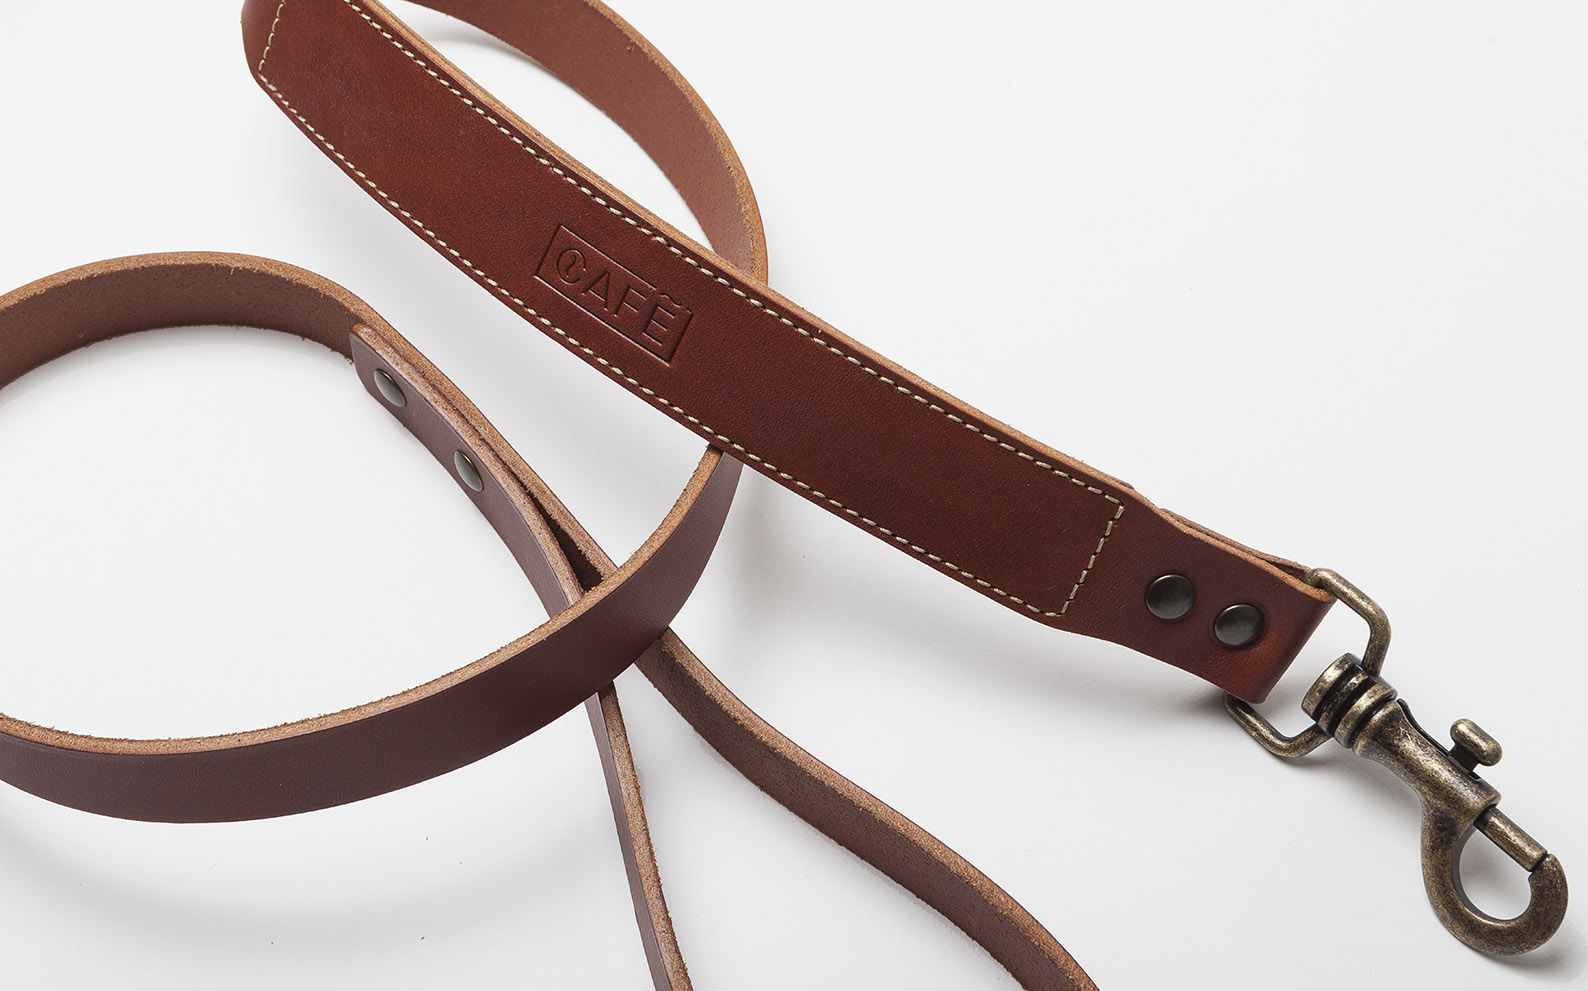 Leash handcrafted in Spain